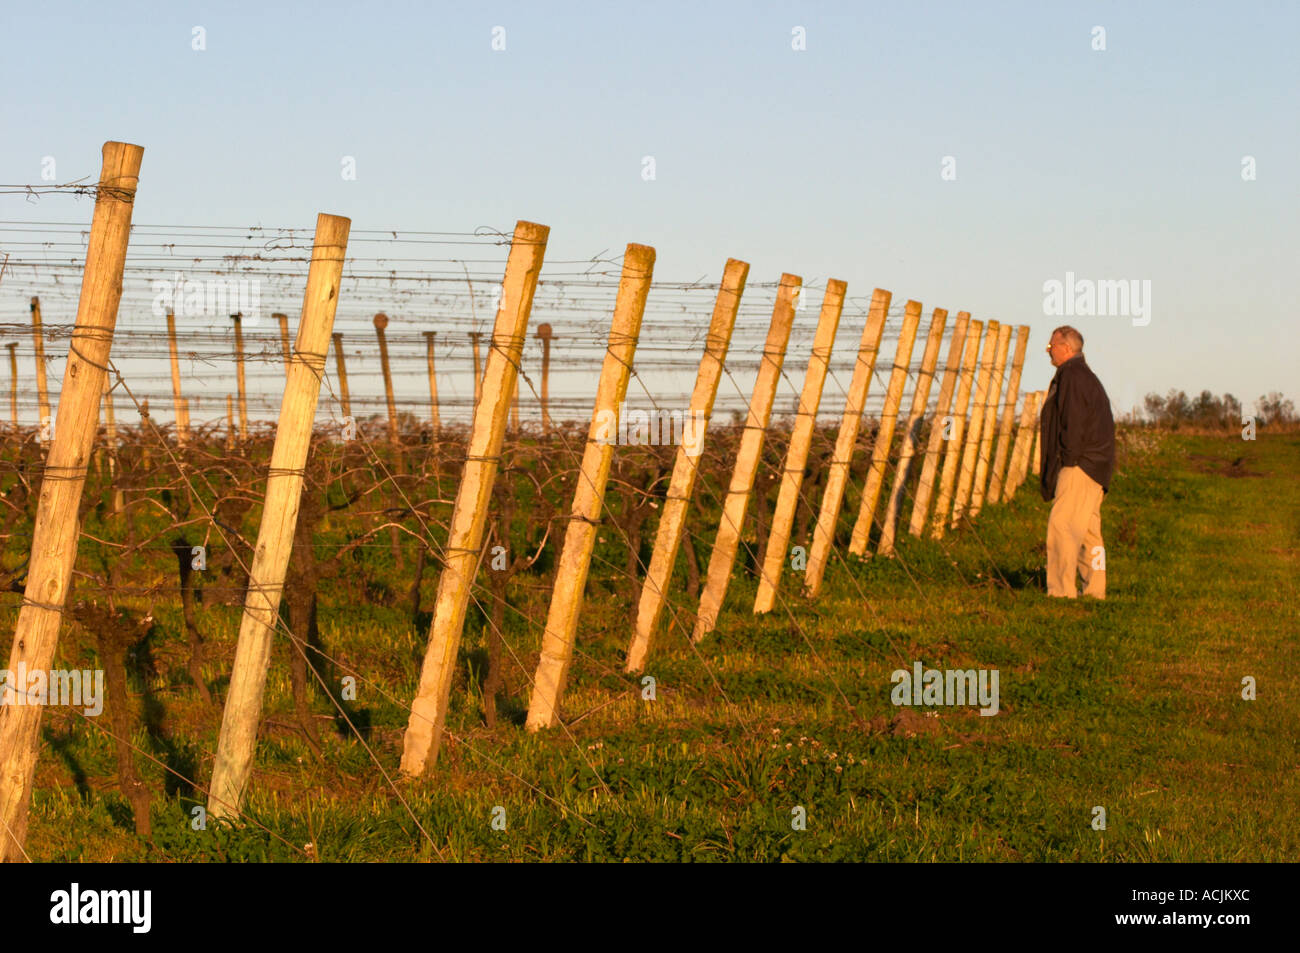 A man standing in the vineyard looking along the rows of vines with the wooden supporting poles and metal wires - Stock Image